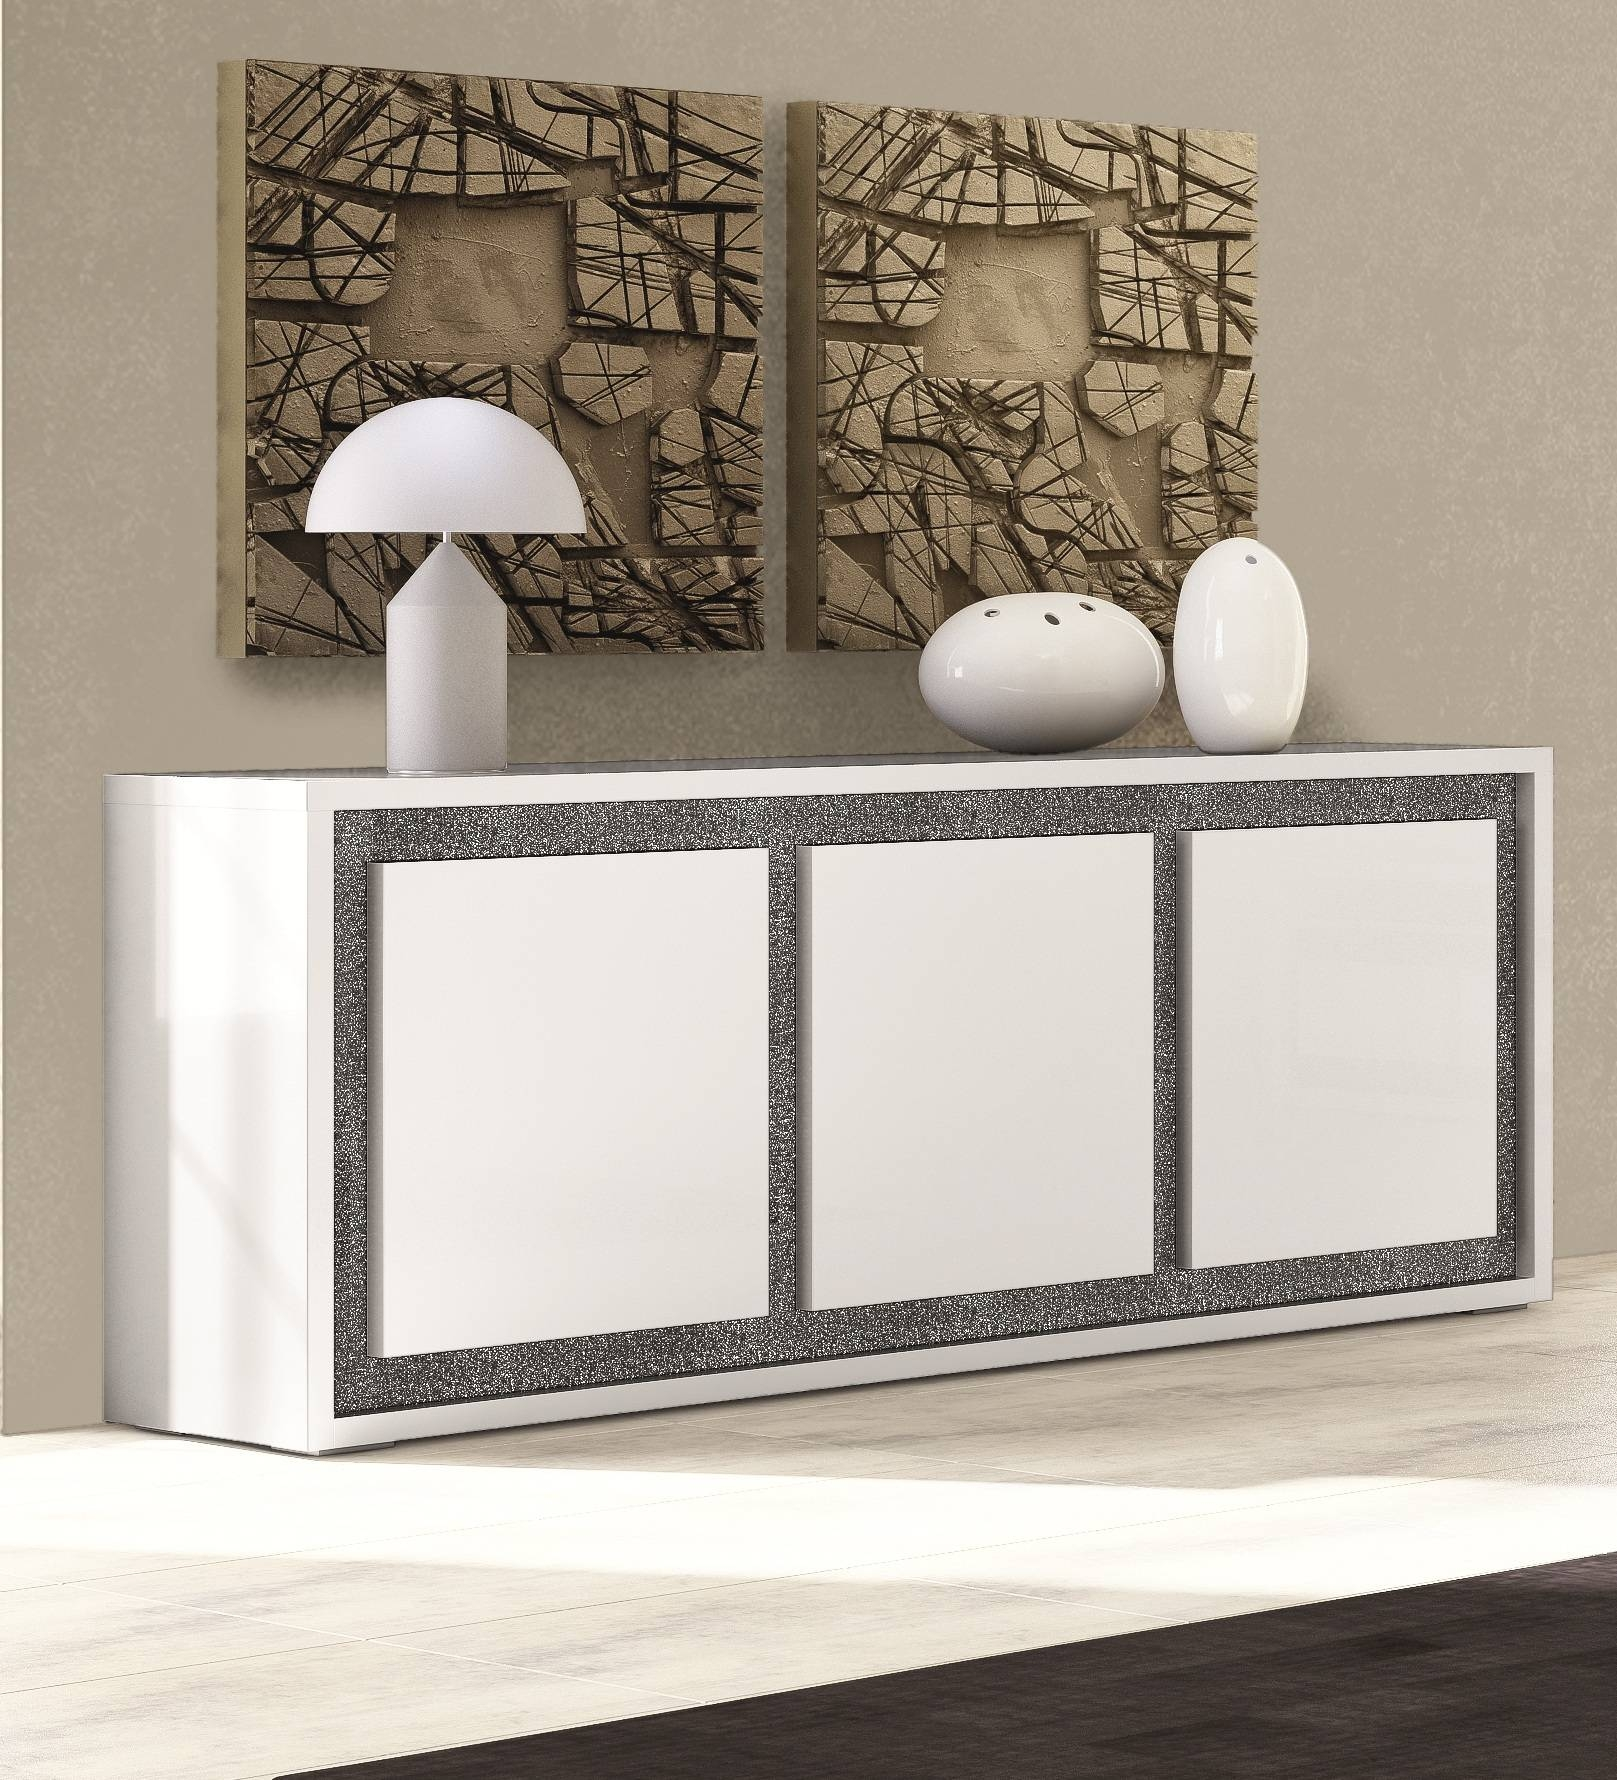 Perfecta And Elegant Sideboard White Table Lamp And Mozaik with regard to Elegant Sideboards (Image 7 of 15)